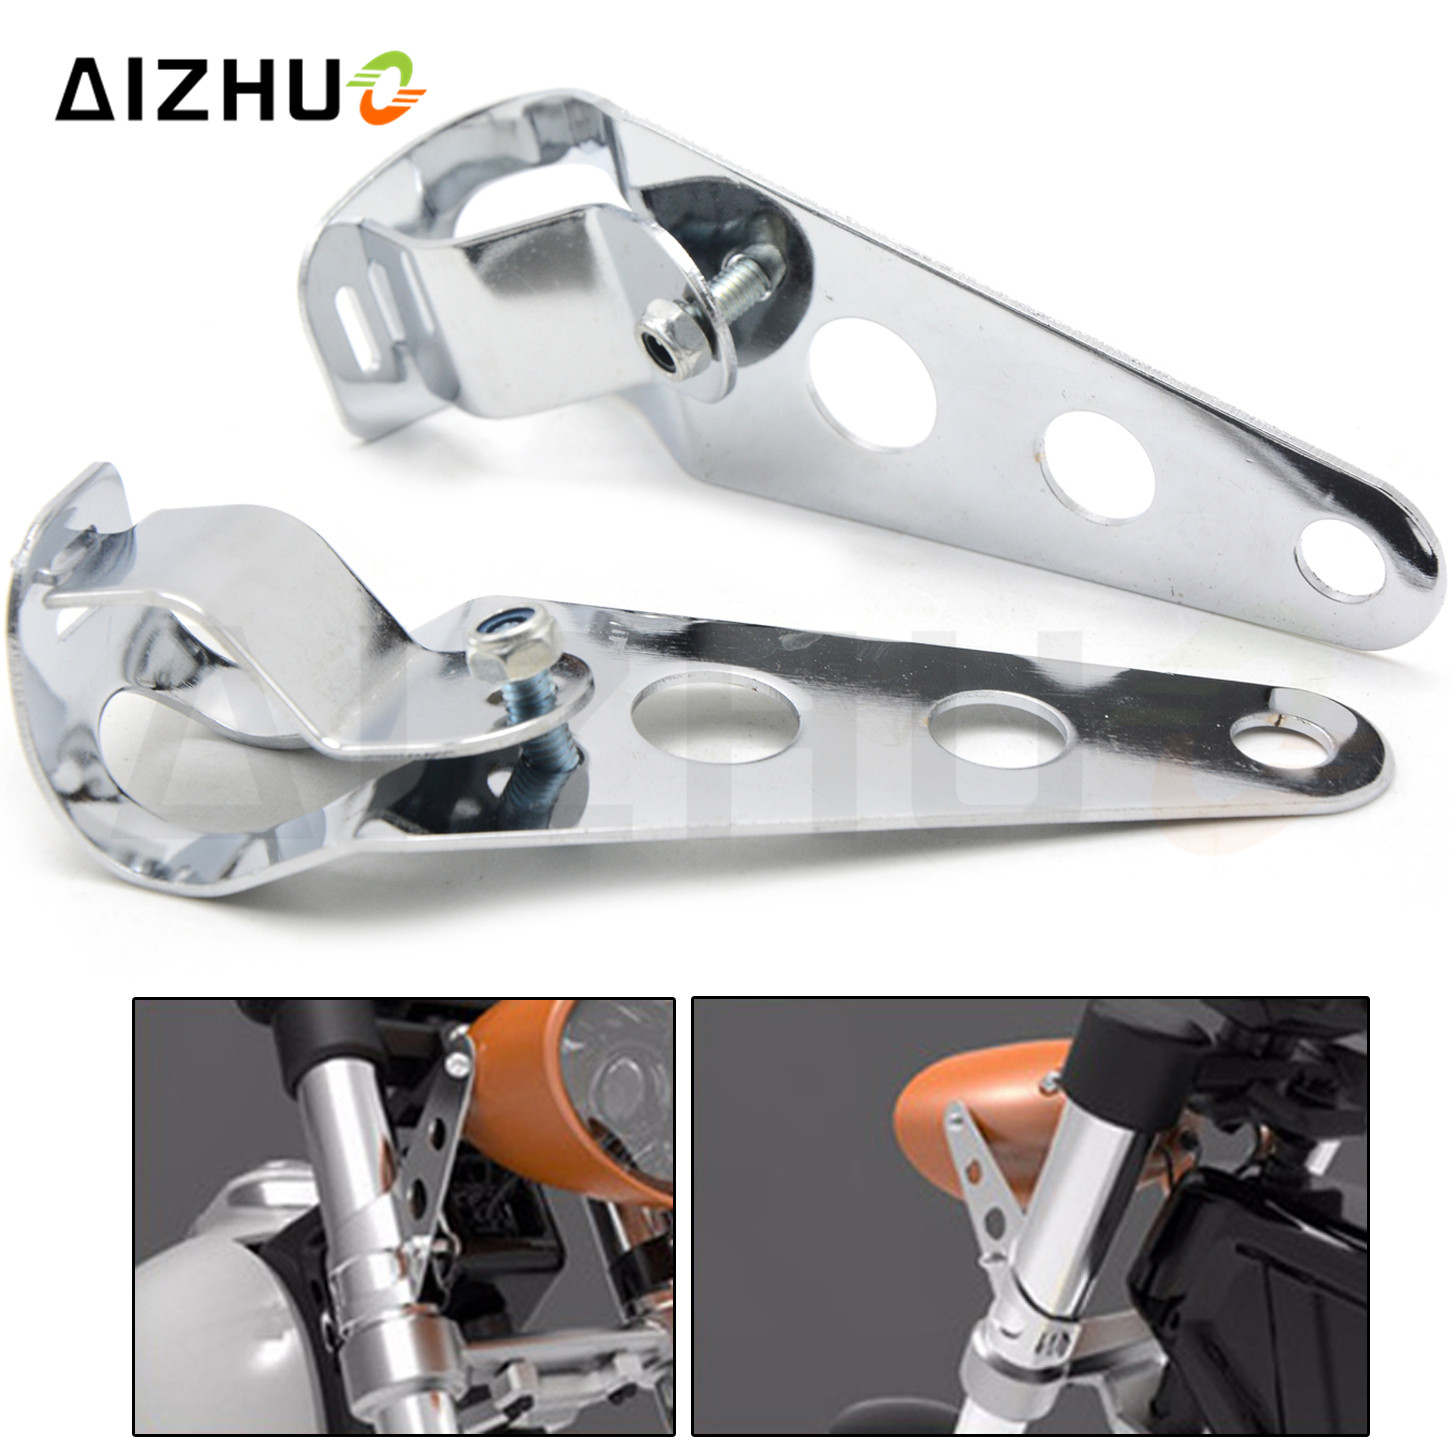 35mm-43mm Fork Motorcycle Accessories Headlight Bracket Cafe Racer Accessories For Yamaha R1 FZ6S MT07 MT09 Bmw R1200 GS S1000RR